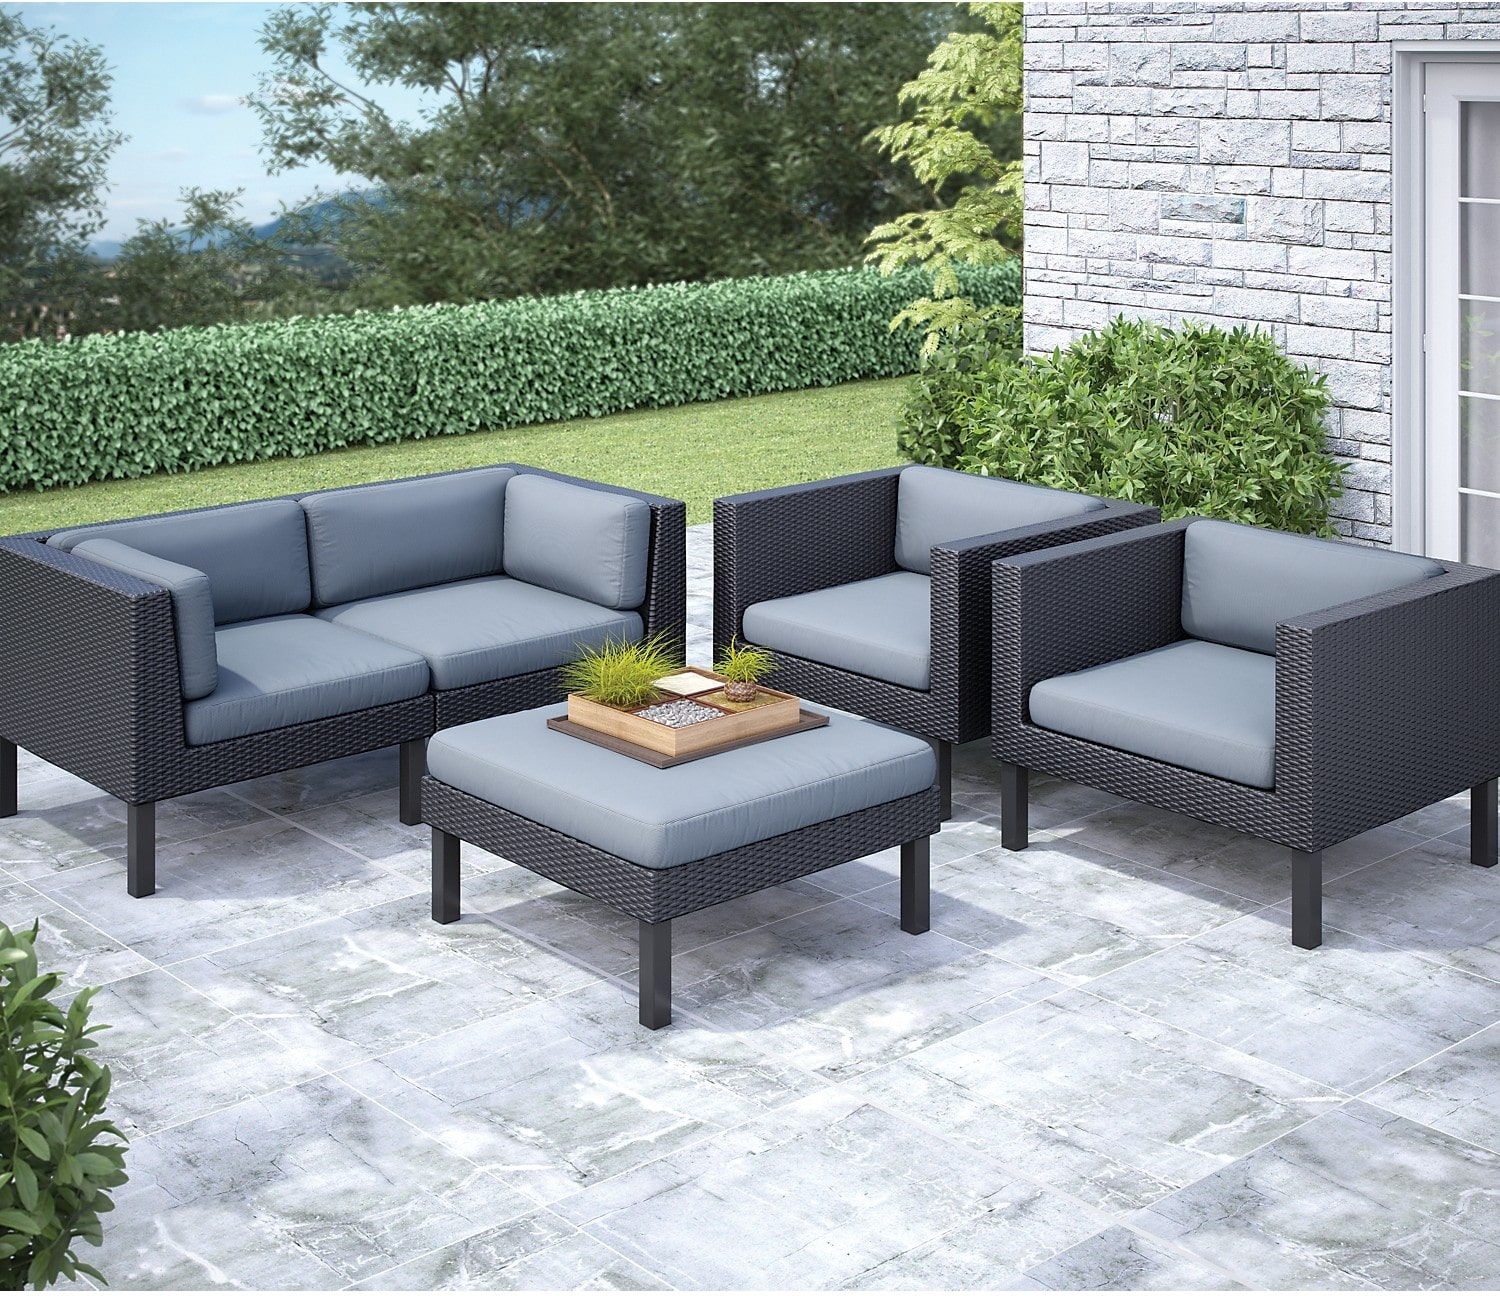 Oakland 5 Piece Patio Conversation Set – Black